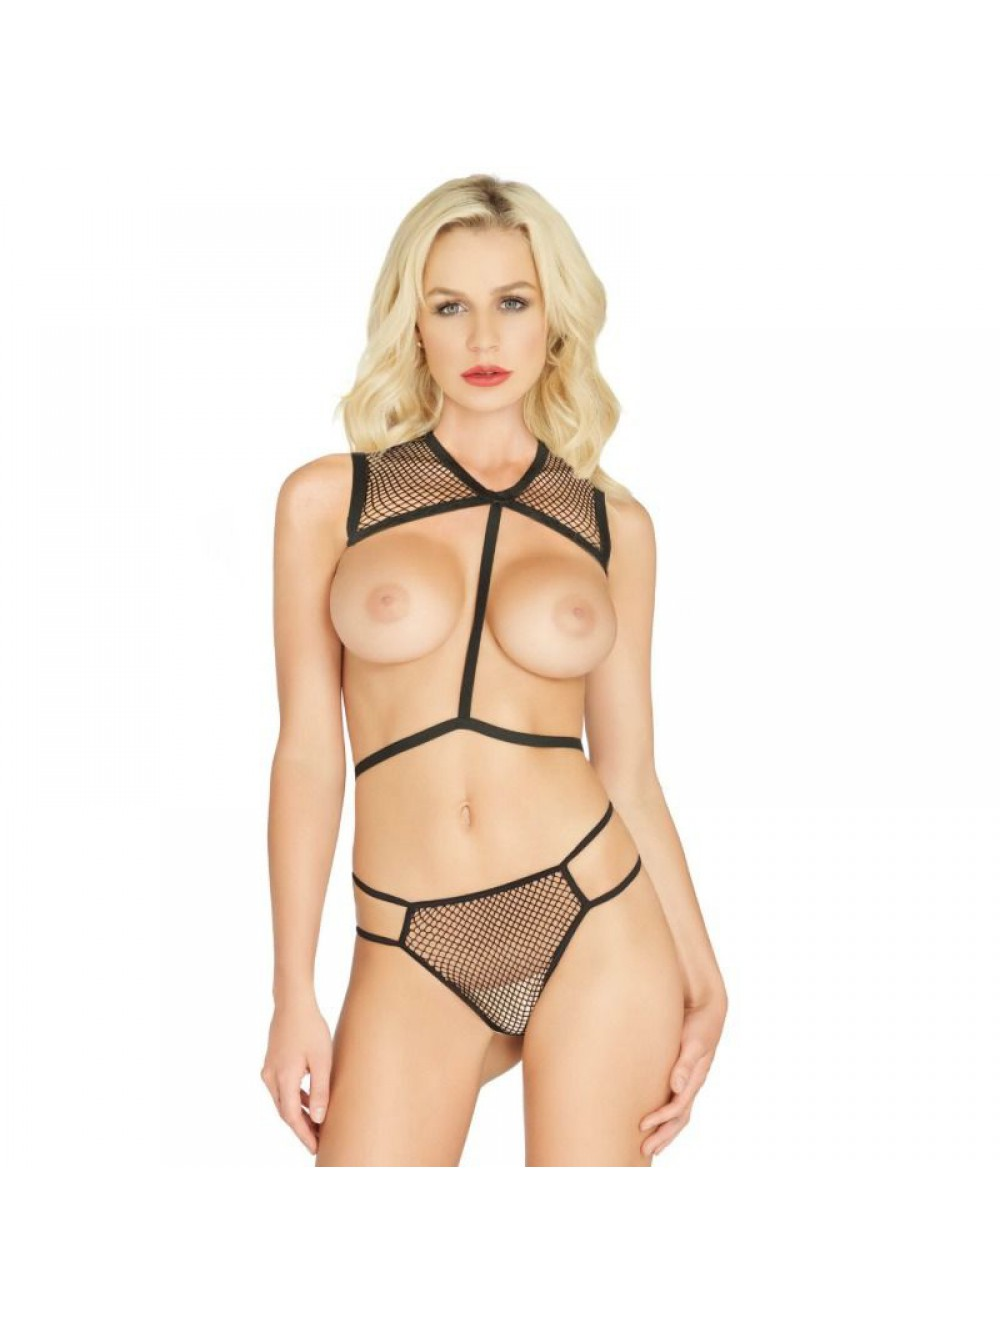 NET BODY HARNESS AND G-STRING 81538 - ONE SIZE 714718524078